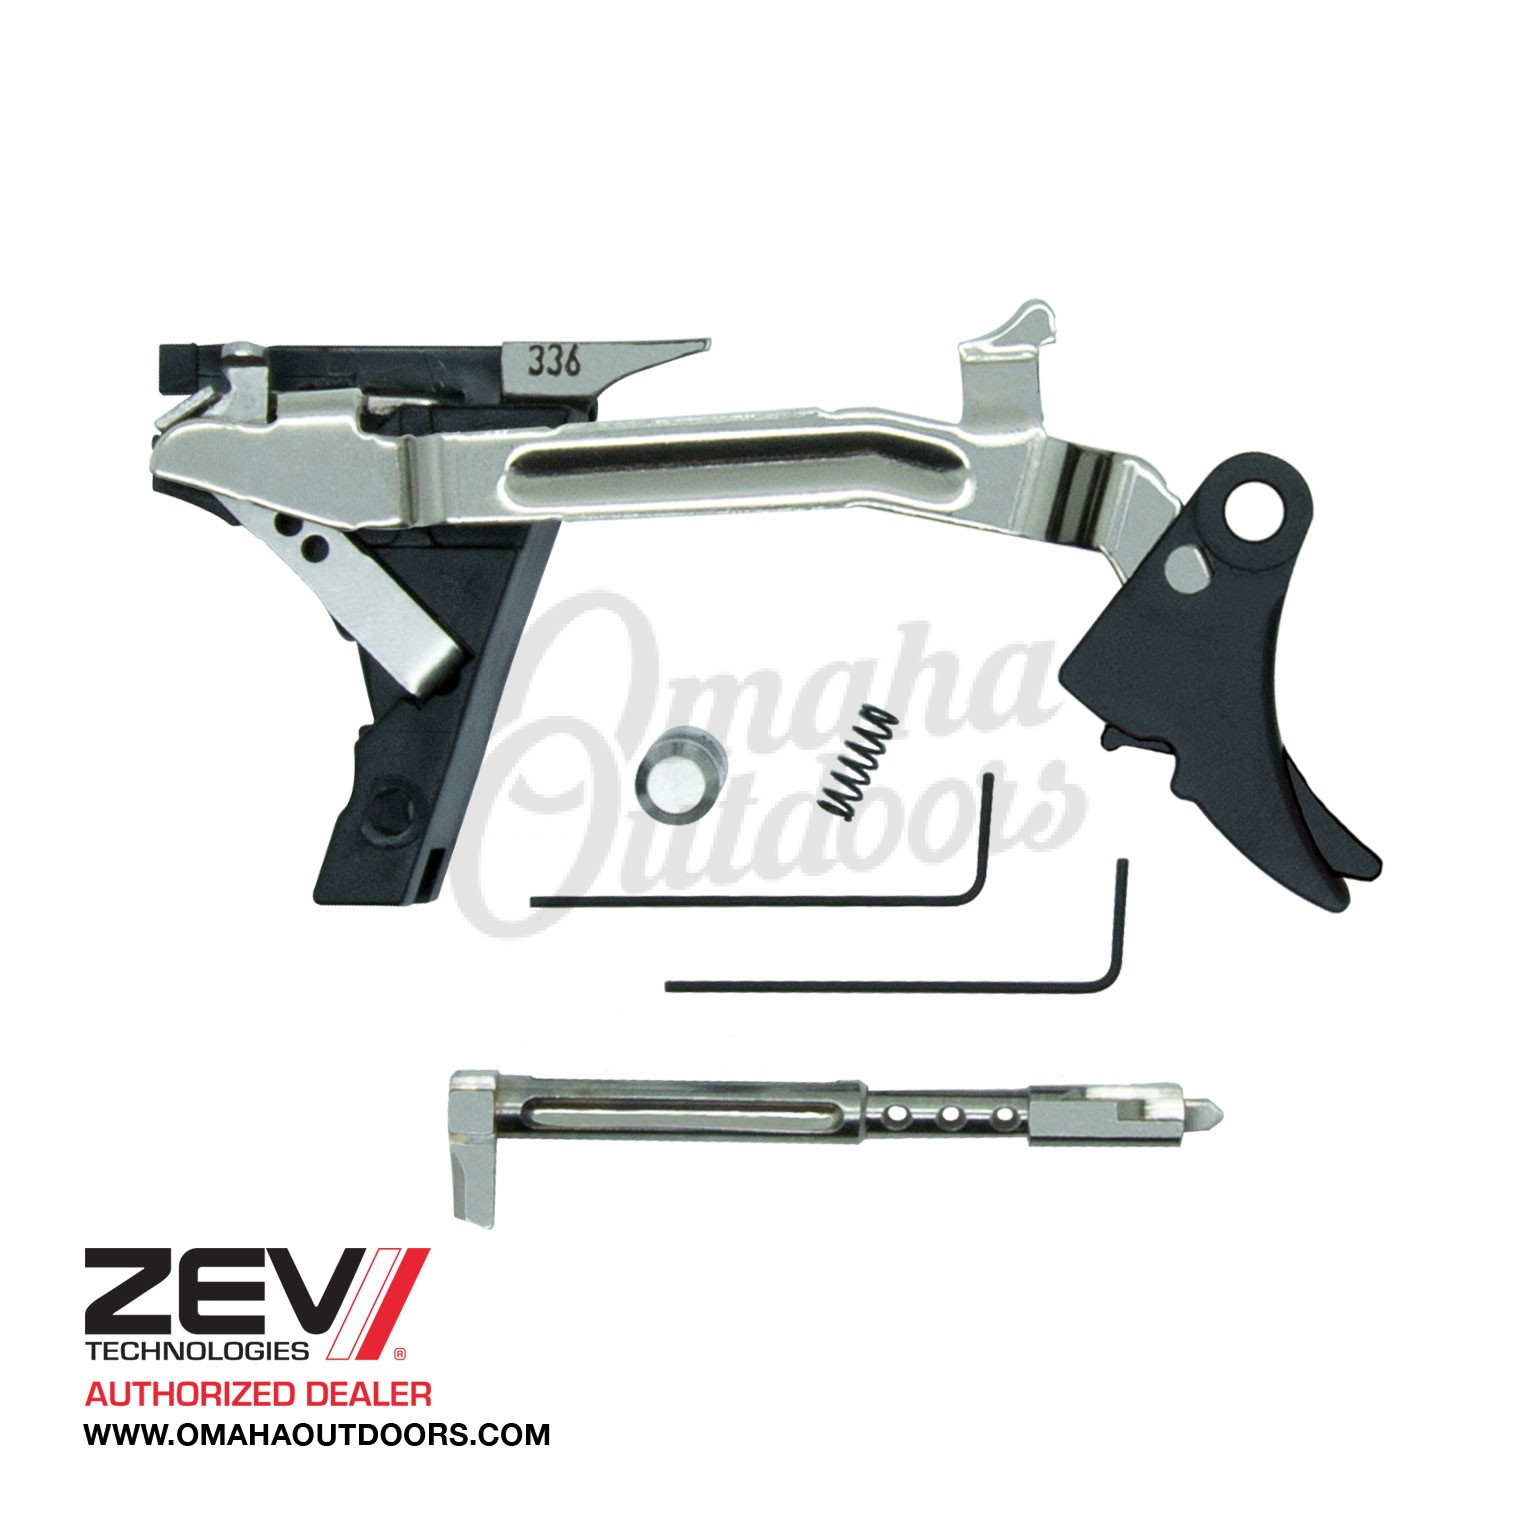 ZEV Tech Fulcrum Ultimate Adjustable Curve Trigger Glock 20 29 Gen 3  Aluminum FUL-ADJ-ULT-10